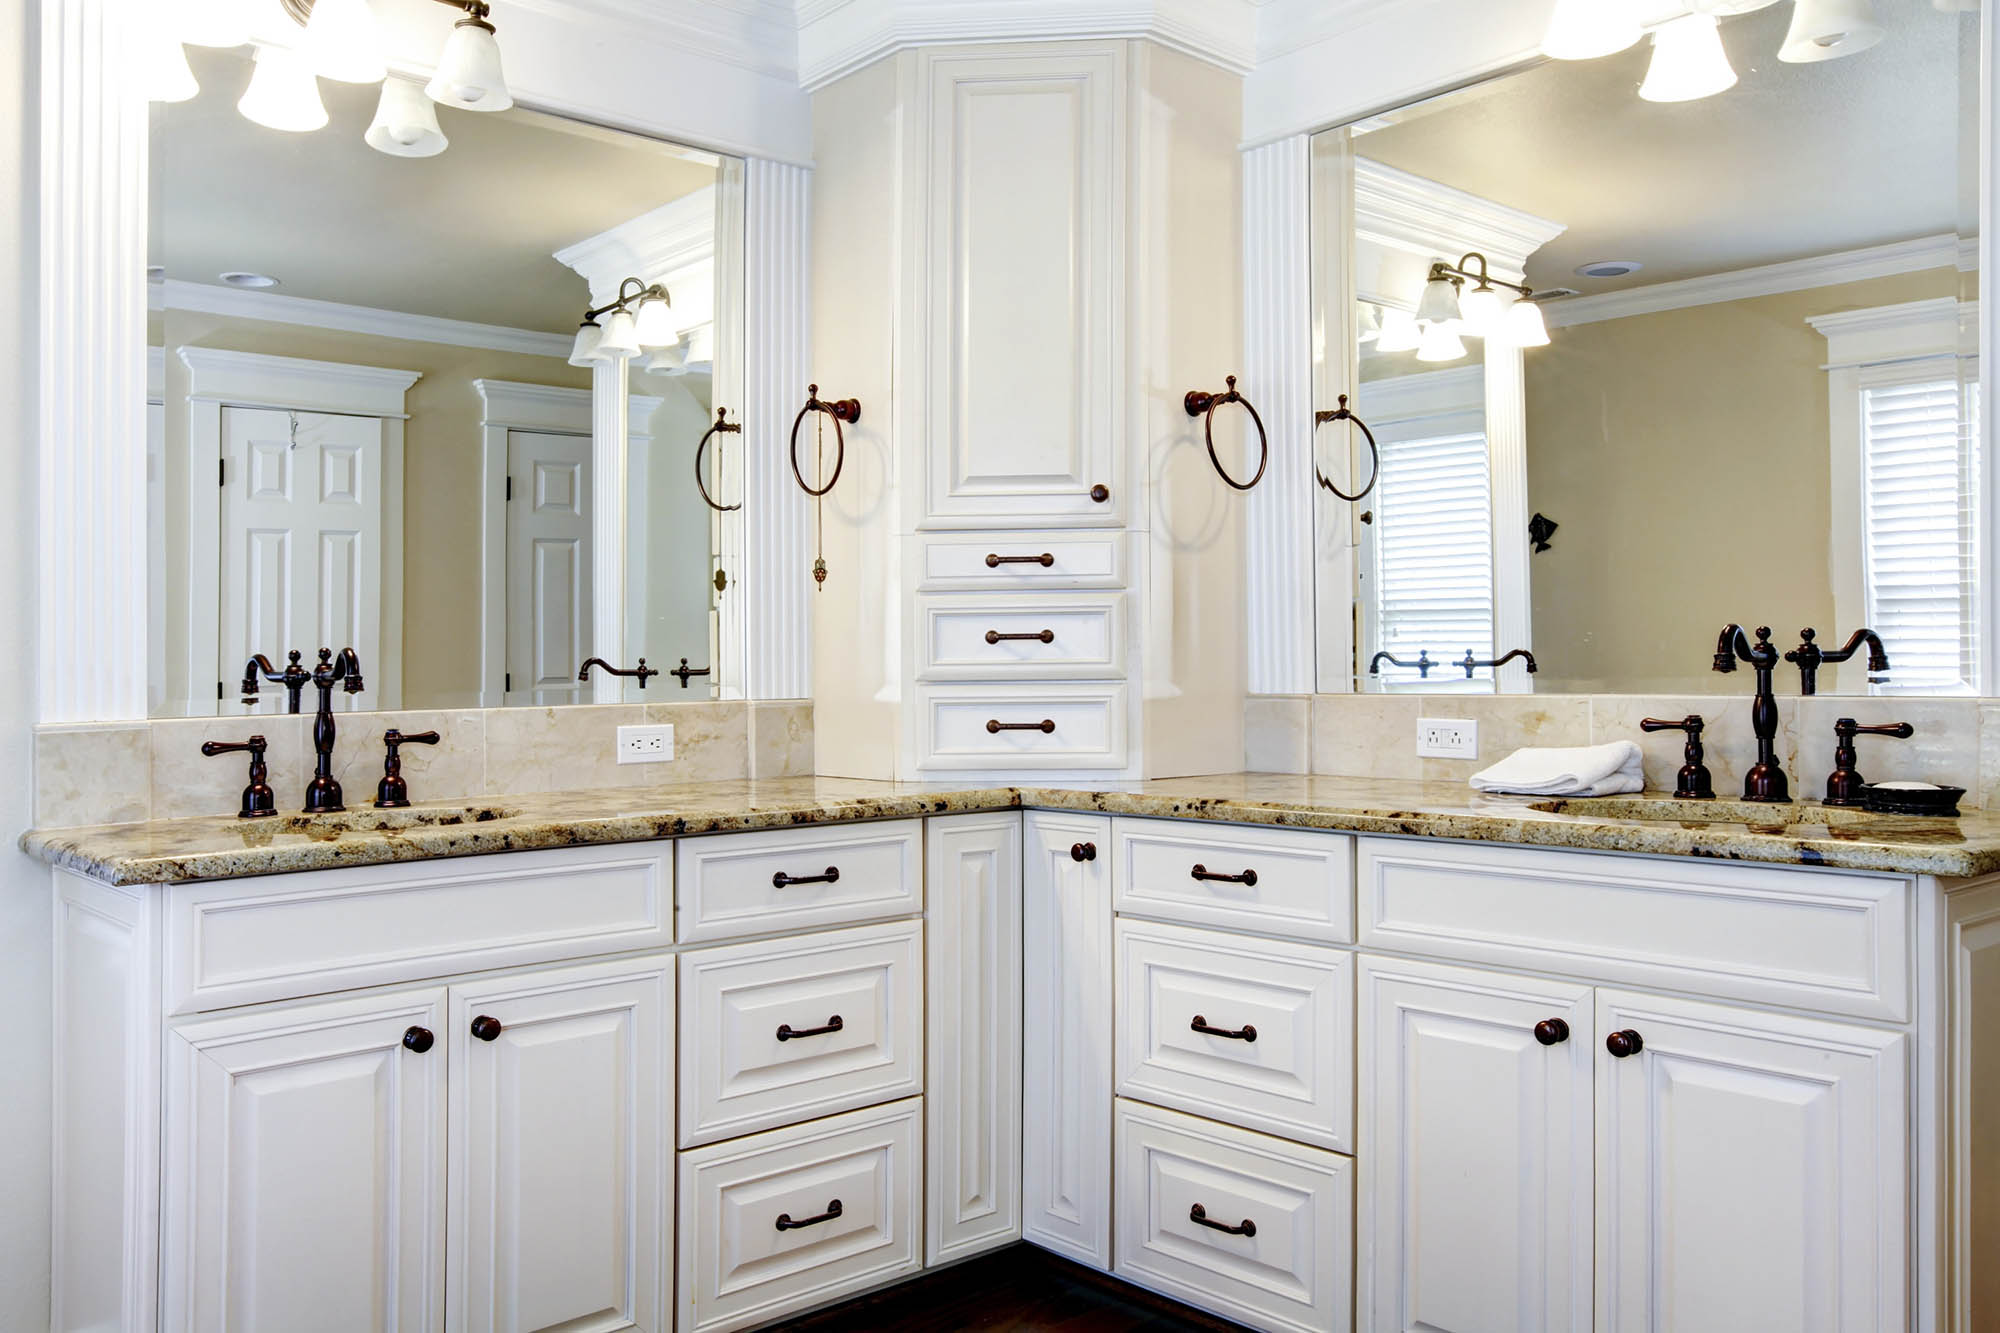 Custom Bathroom Vanities Carol Stream, IL